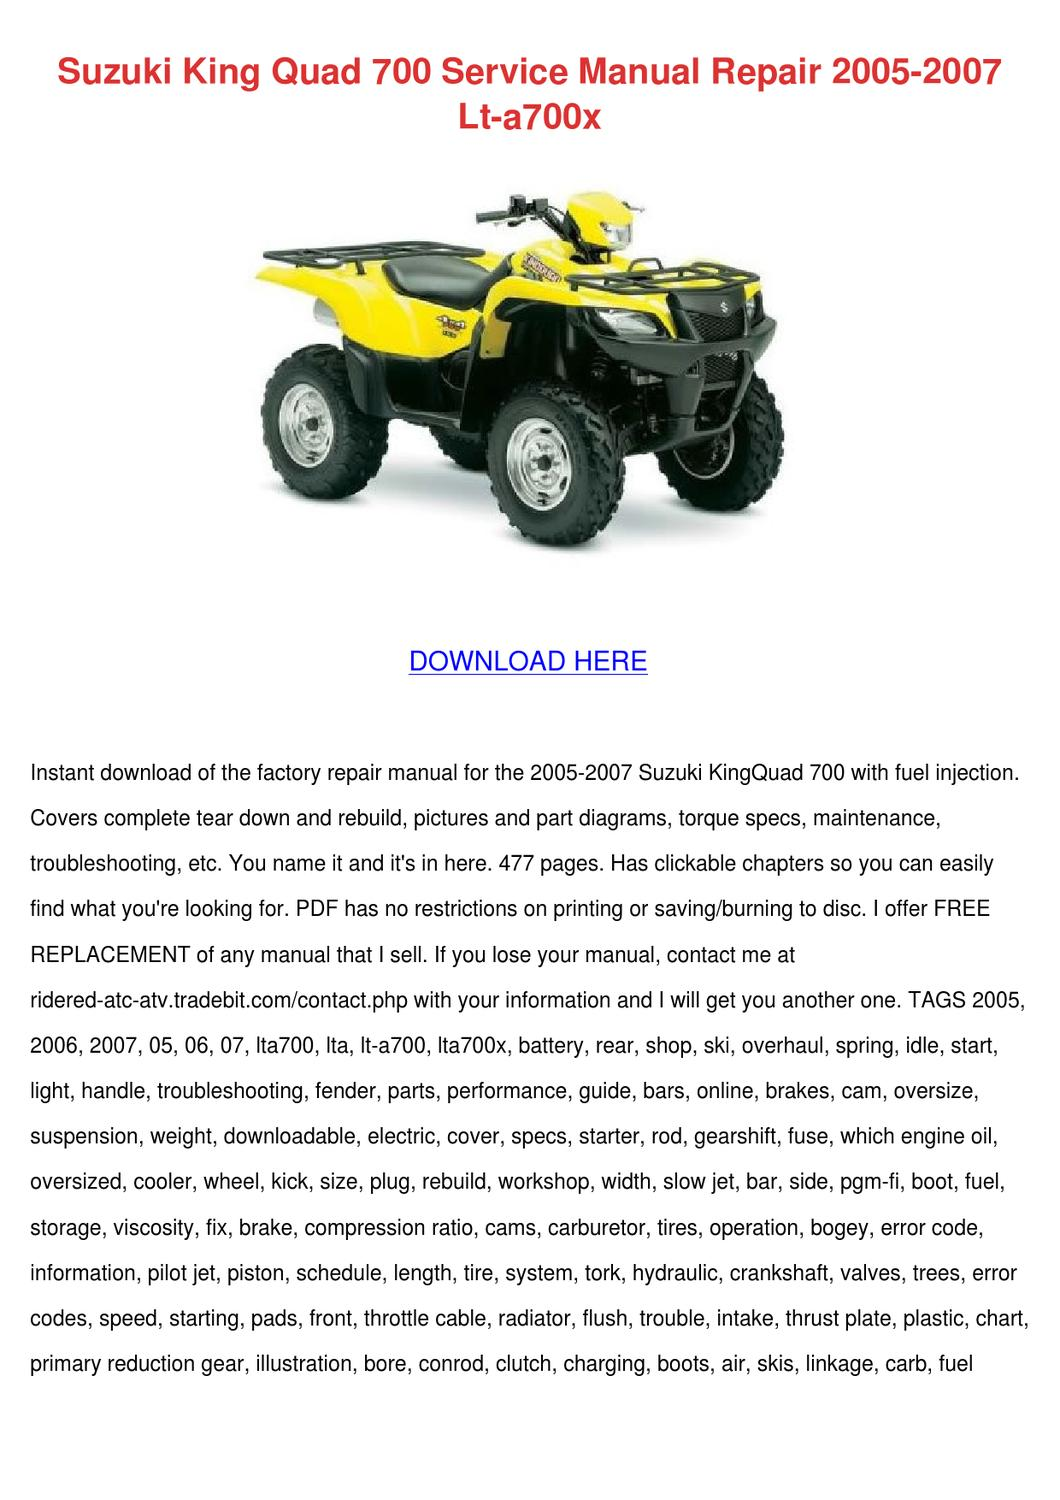 Suzuki King Quad 700 Service Manual Repair 20 by So Hayase - issuu